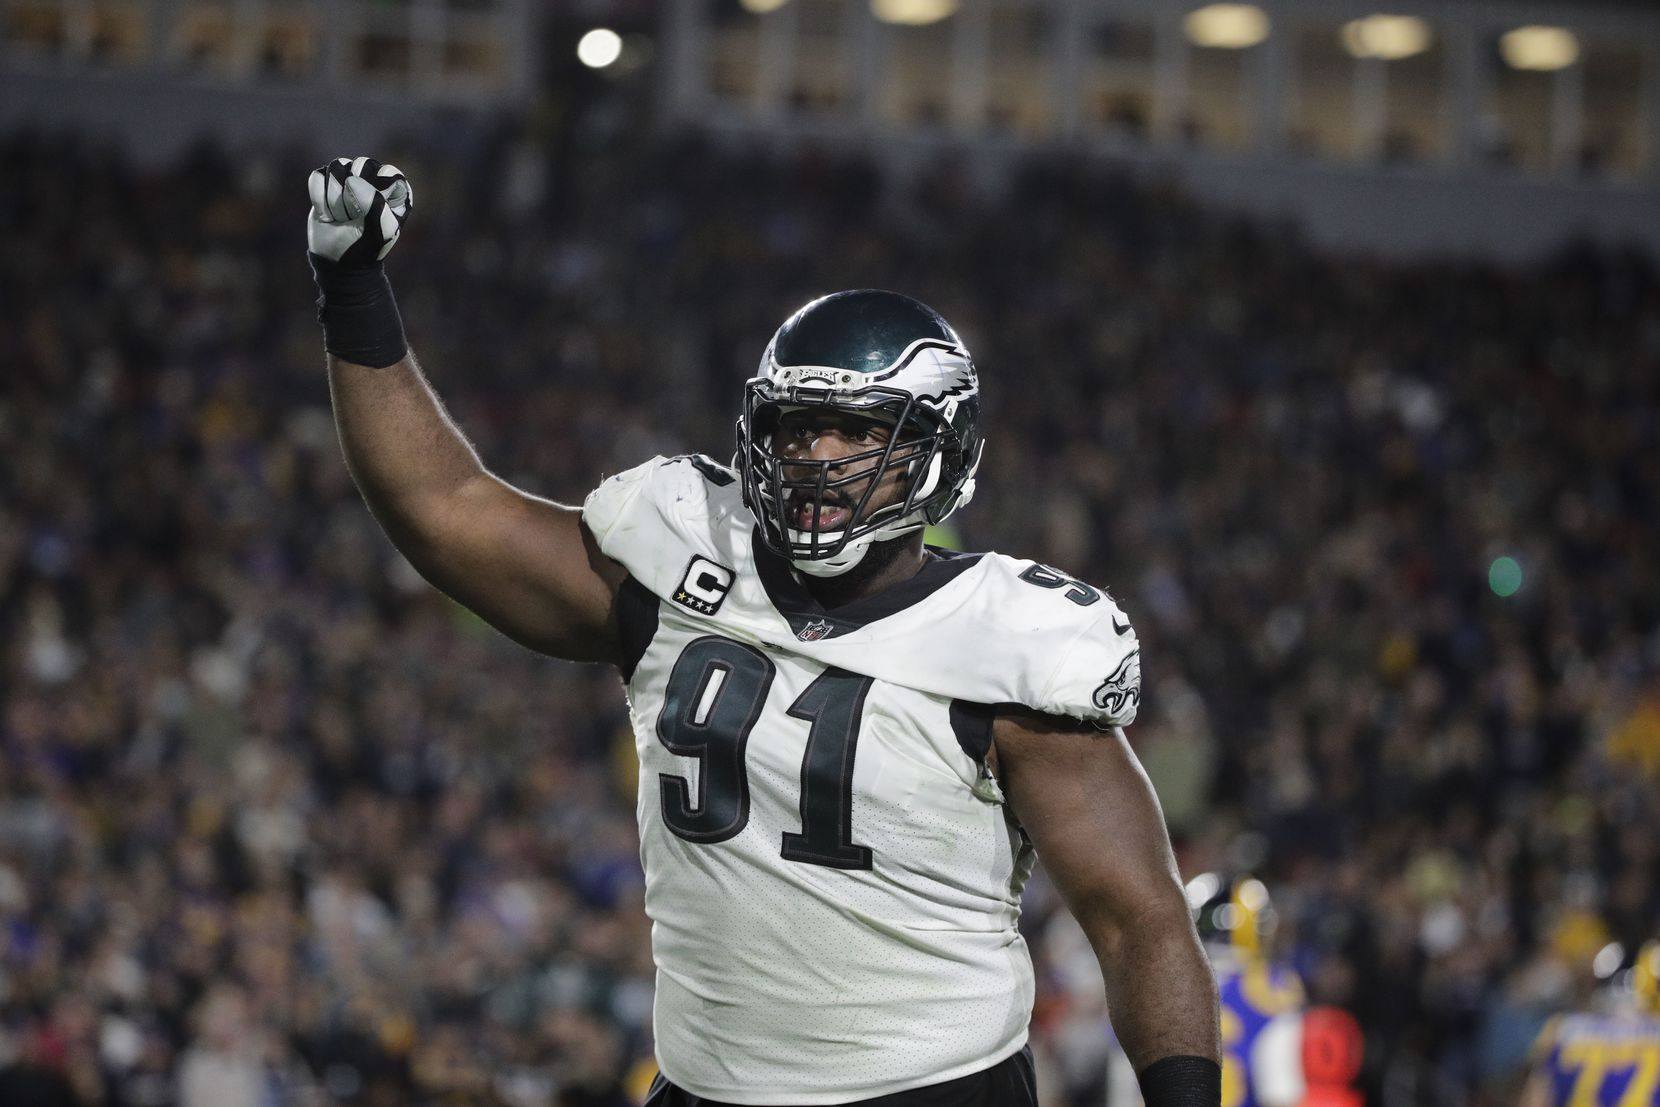 Philadelphia Eagles' Fletcher Cox reacts to a play during an NFL football game against the Los Angeles Rams Sunday, Dec. 16, 2018, in Los Angeles . (AP Photo/Jae C. Hong)